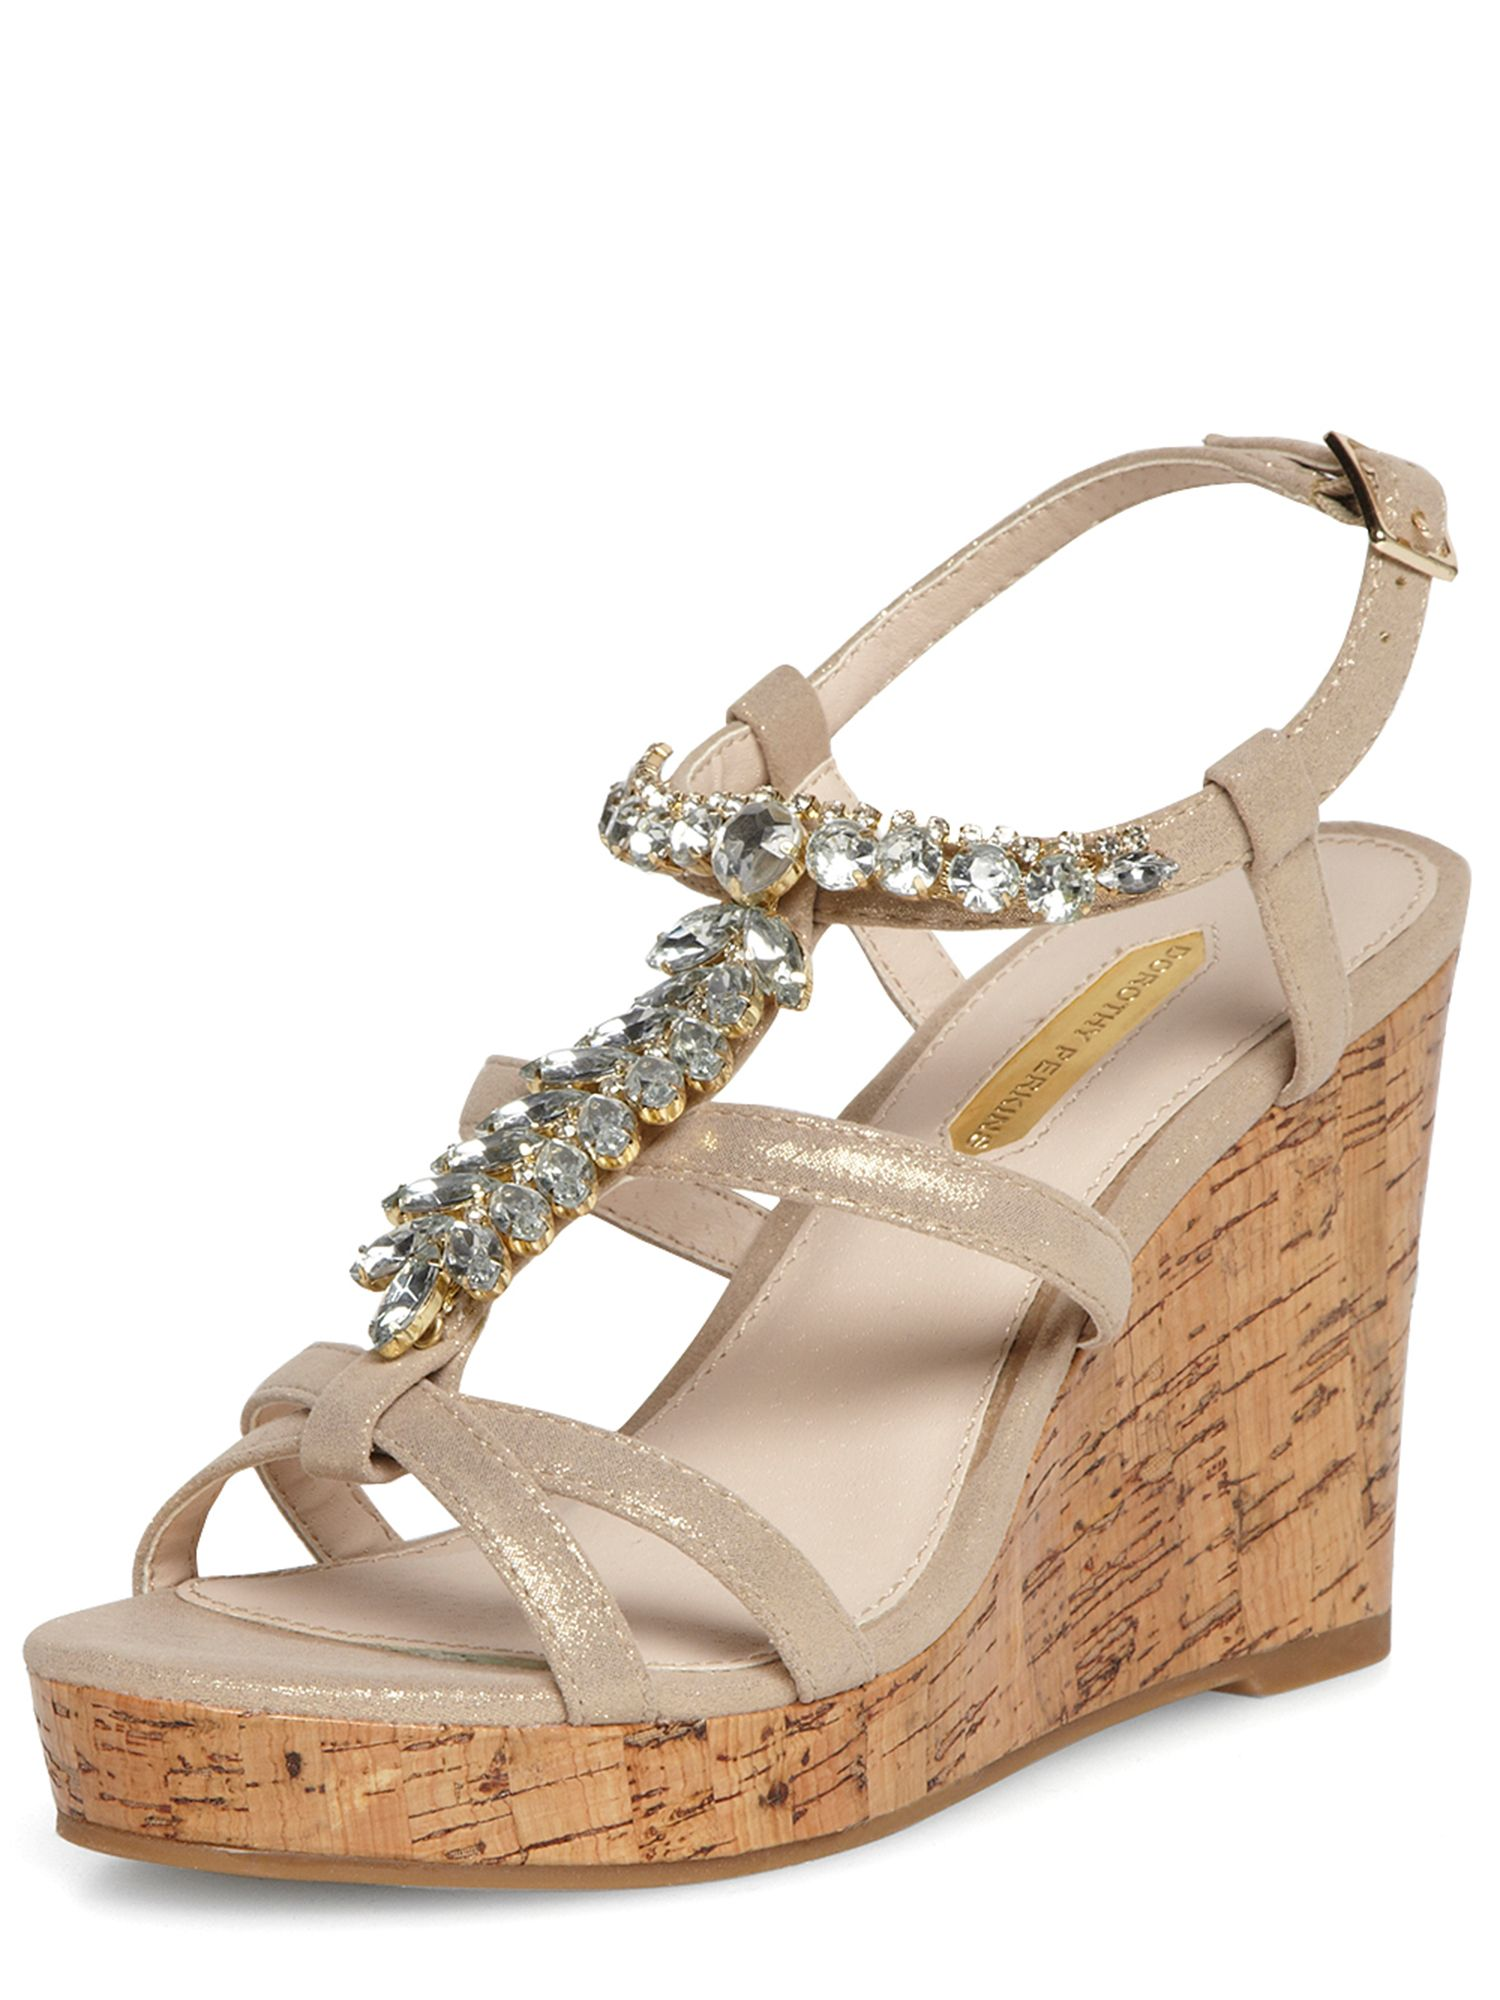 Metallic Jewel Trim Wedges